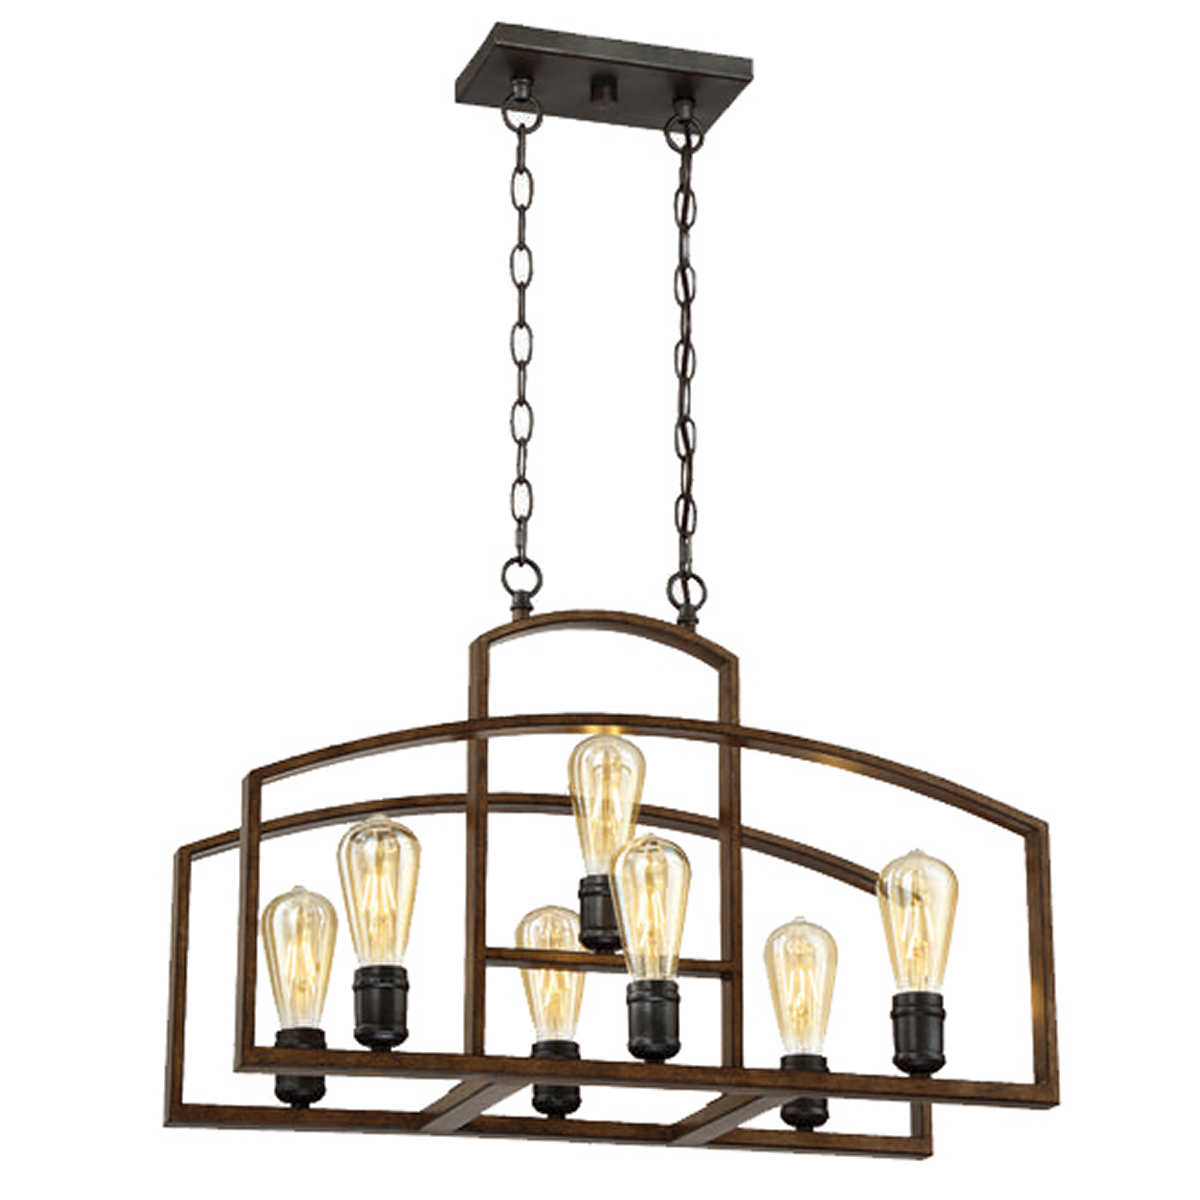 DSI 7 Light Chandelier